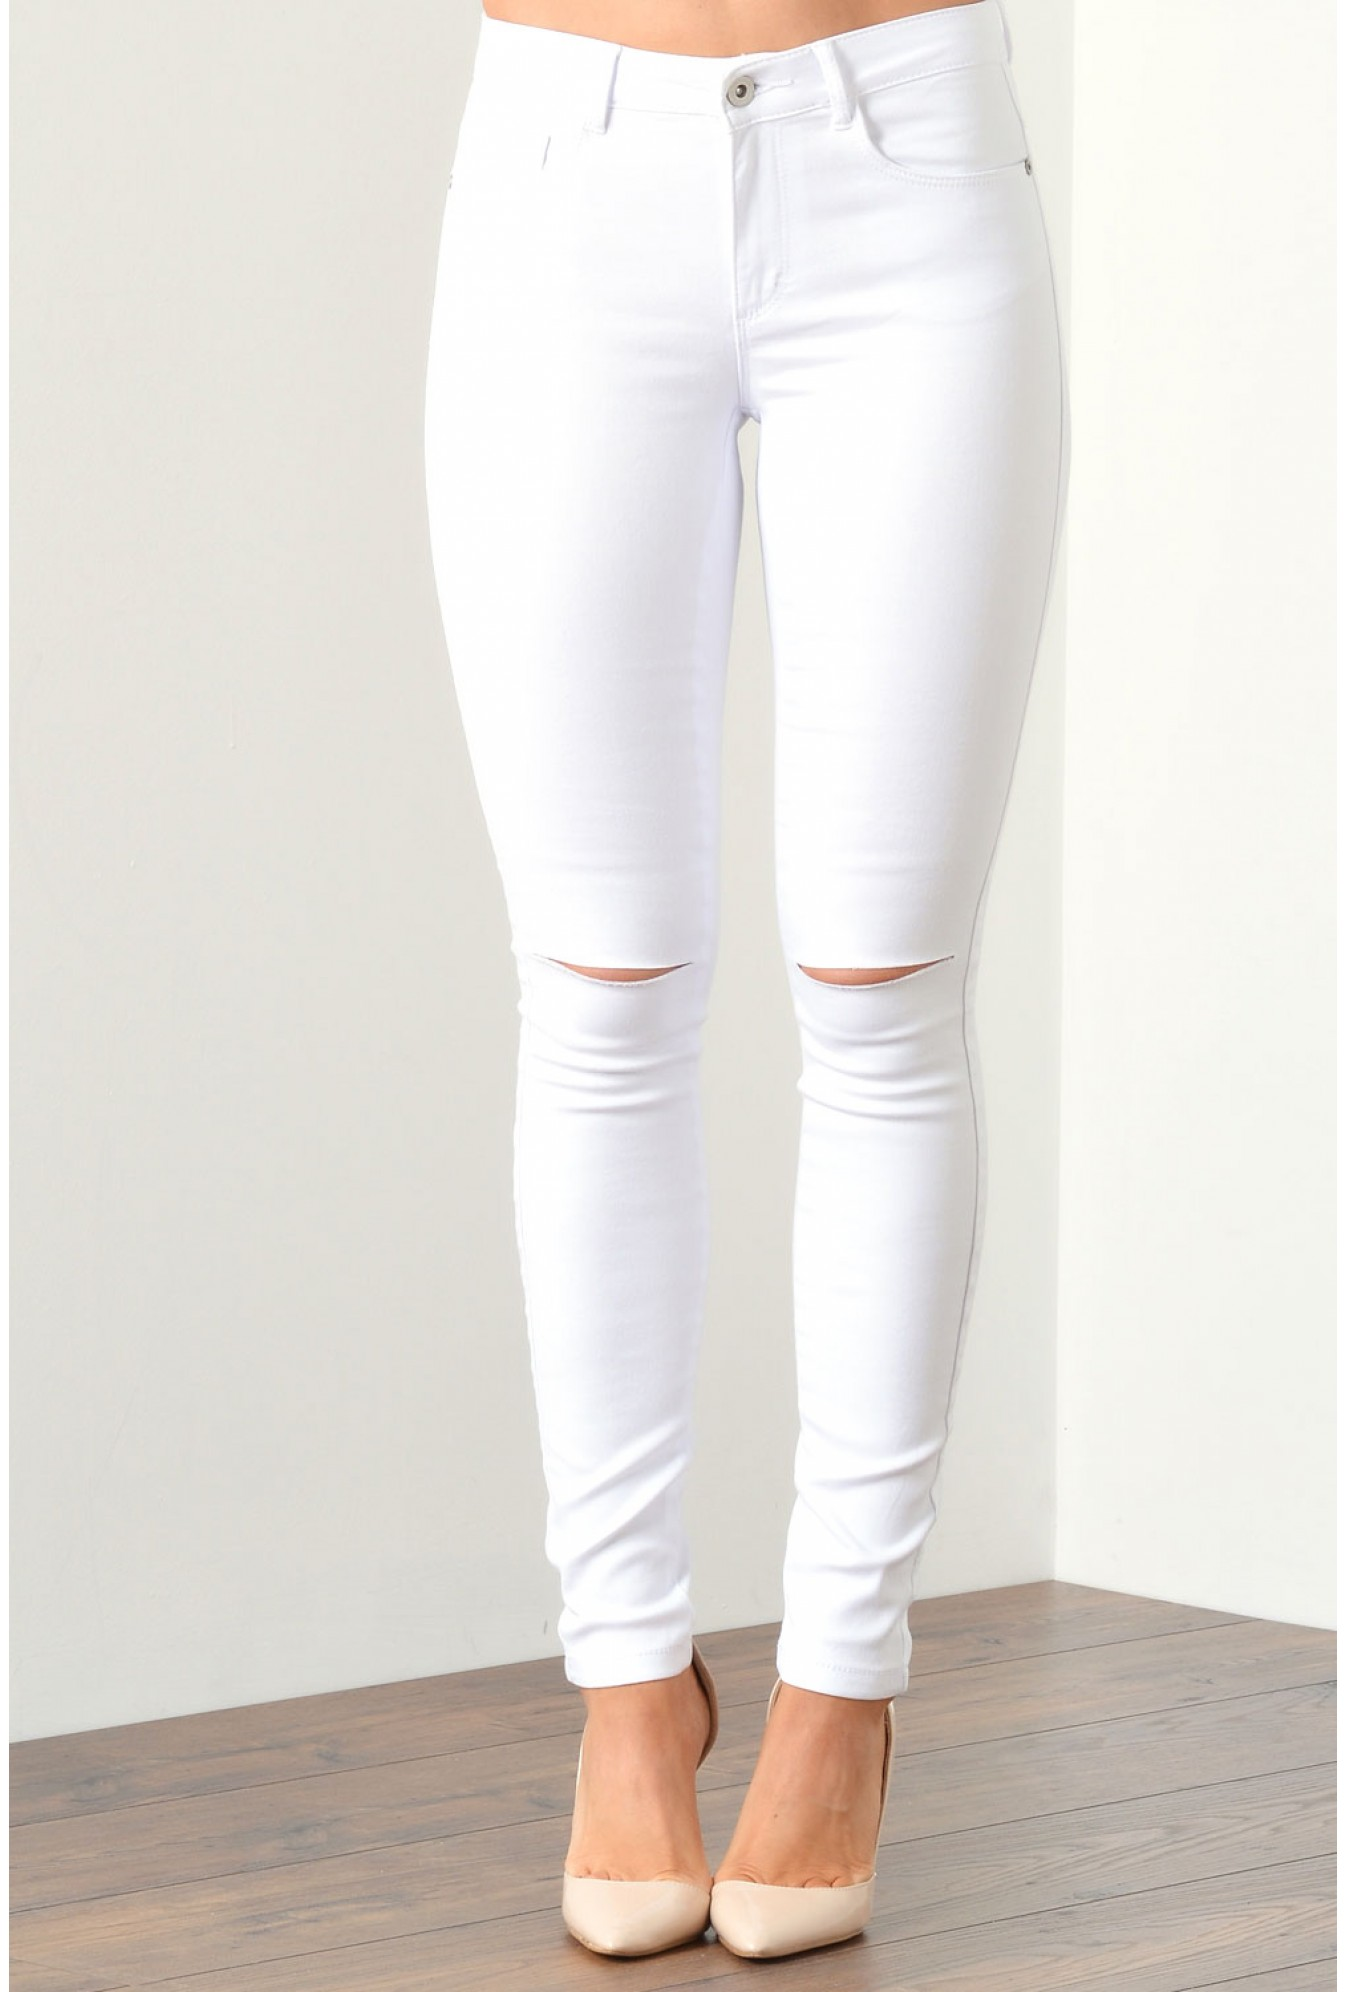 bd77e843a8522 Only Royal Regular Kneecut White Skinny Fit Jeans | iCLOTHING